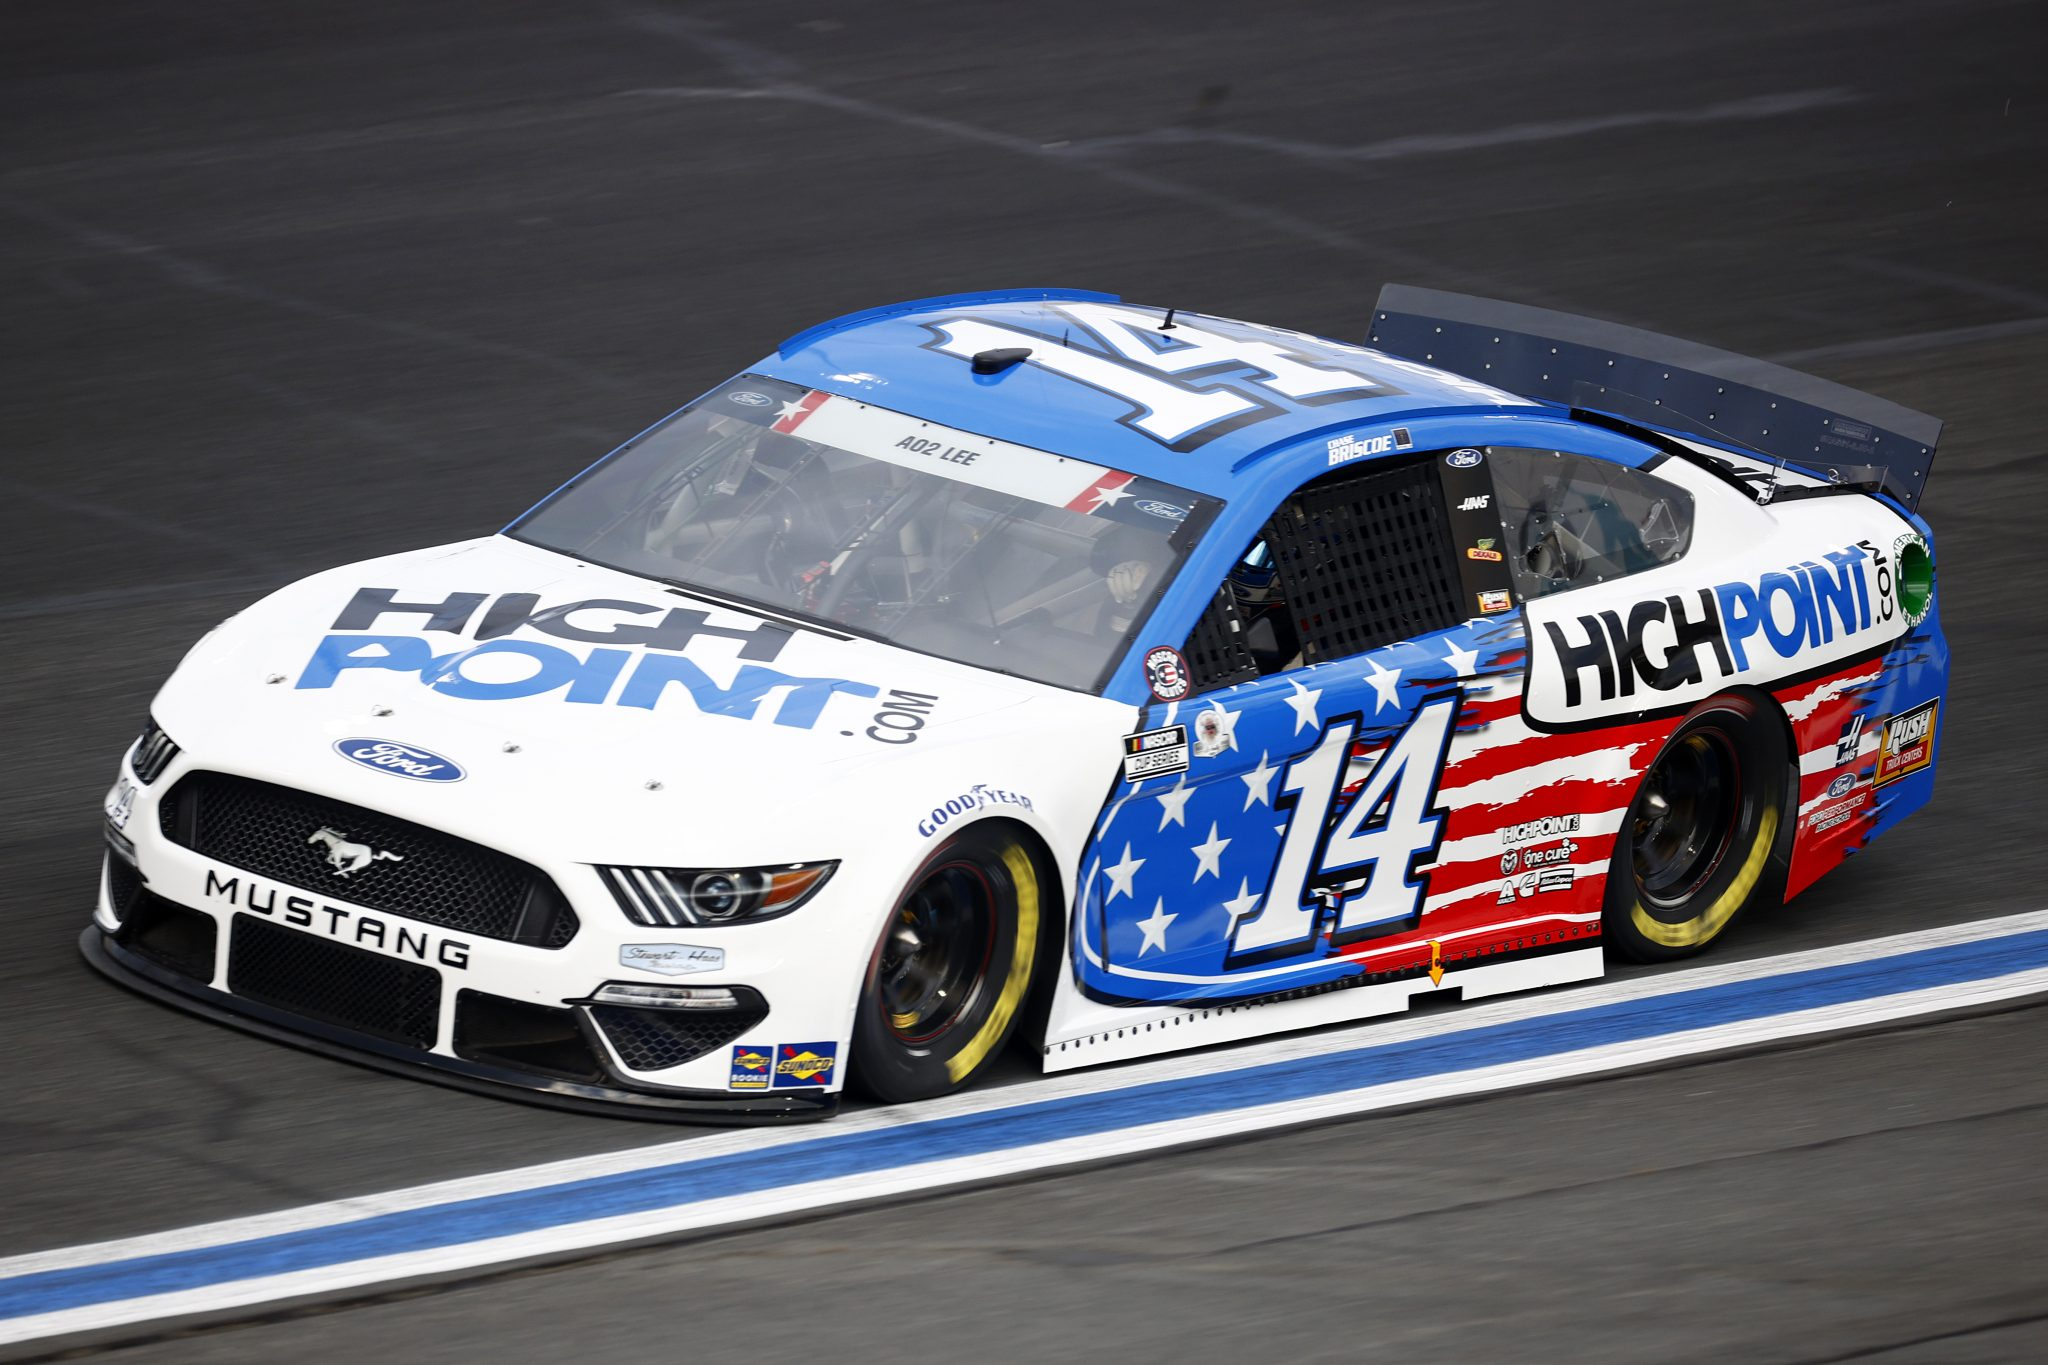 CONCORD, NORTH CAROLINA - MAY 28: Chase Briscoe, driver of the #14 HighPoint.com Ford, drives during practice for the NASCAR Cup Series Coca-Cola 600 at Charlotte Motor Speedway on May 28, 2021 in Concord, North Carolina. (Photo by Jared C. Tilton/Getty Images) | Getty Images